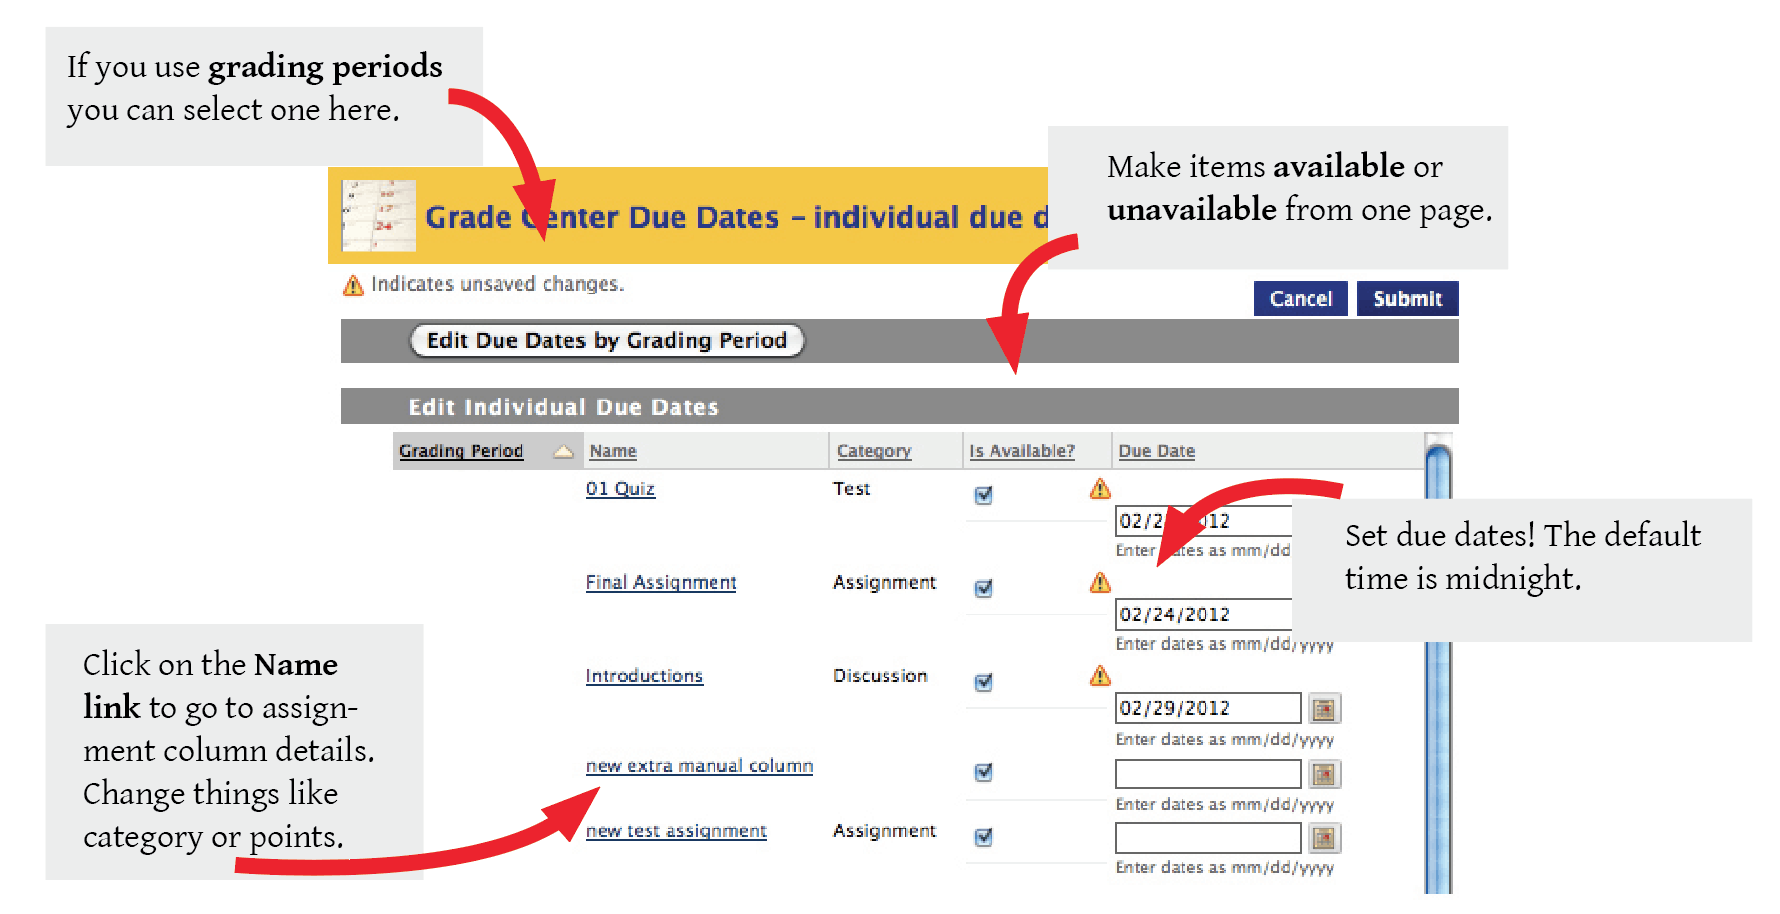 Explains what you'd see on the Set Grade Center Dues Dates screen. Edit Due dates by Grading period is in upper left. Click on the name of an assignment to go to the assignment details. Make an assignment available or unavailable. Set a due date in the text box including a time. The default is midnight.